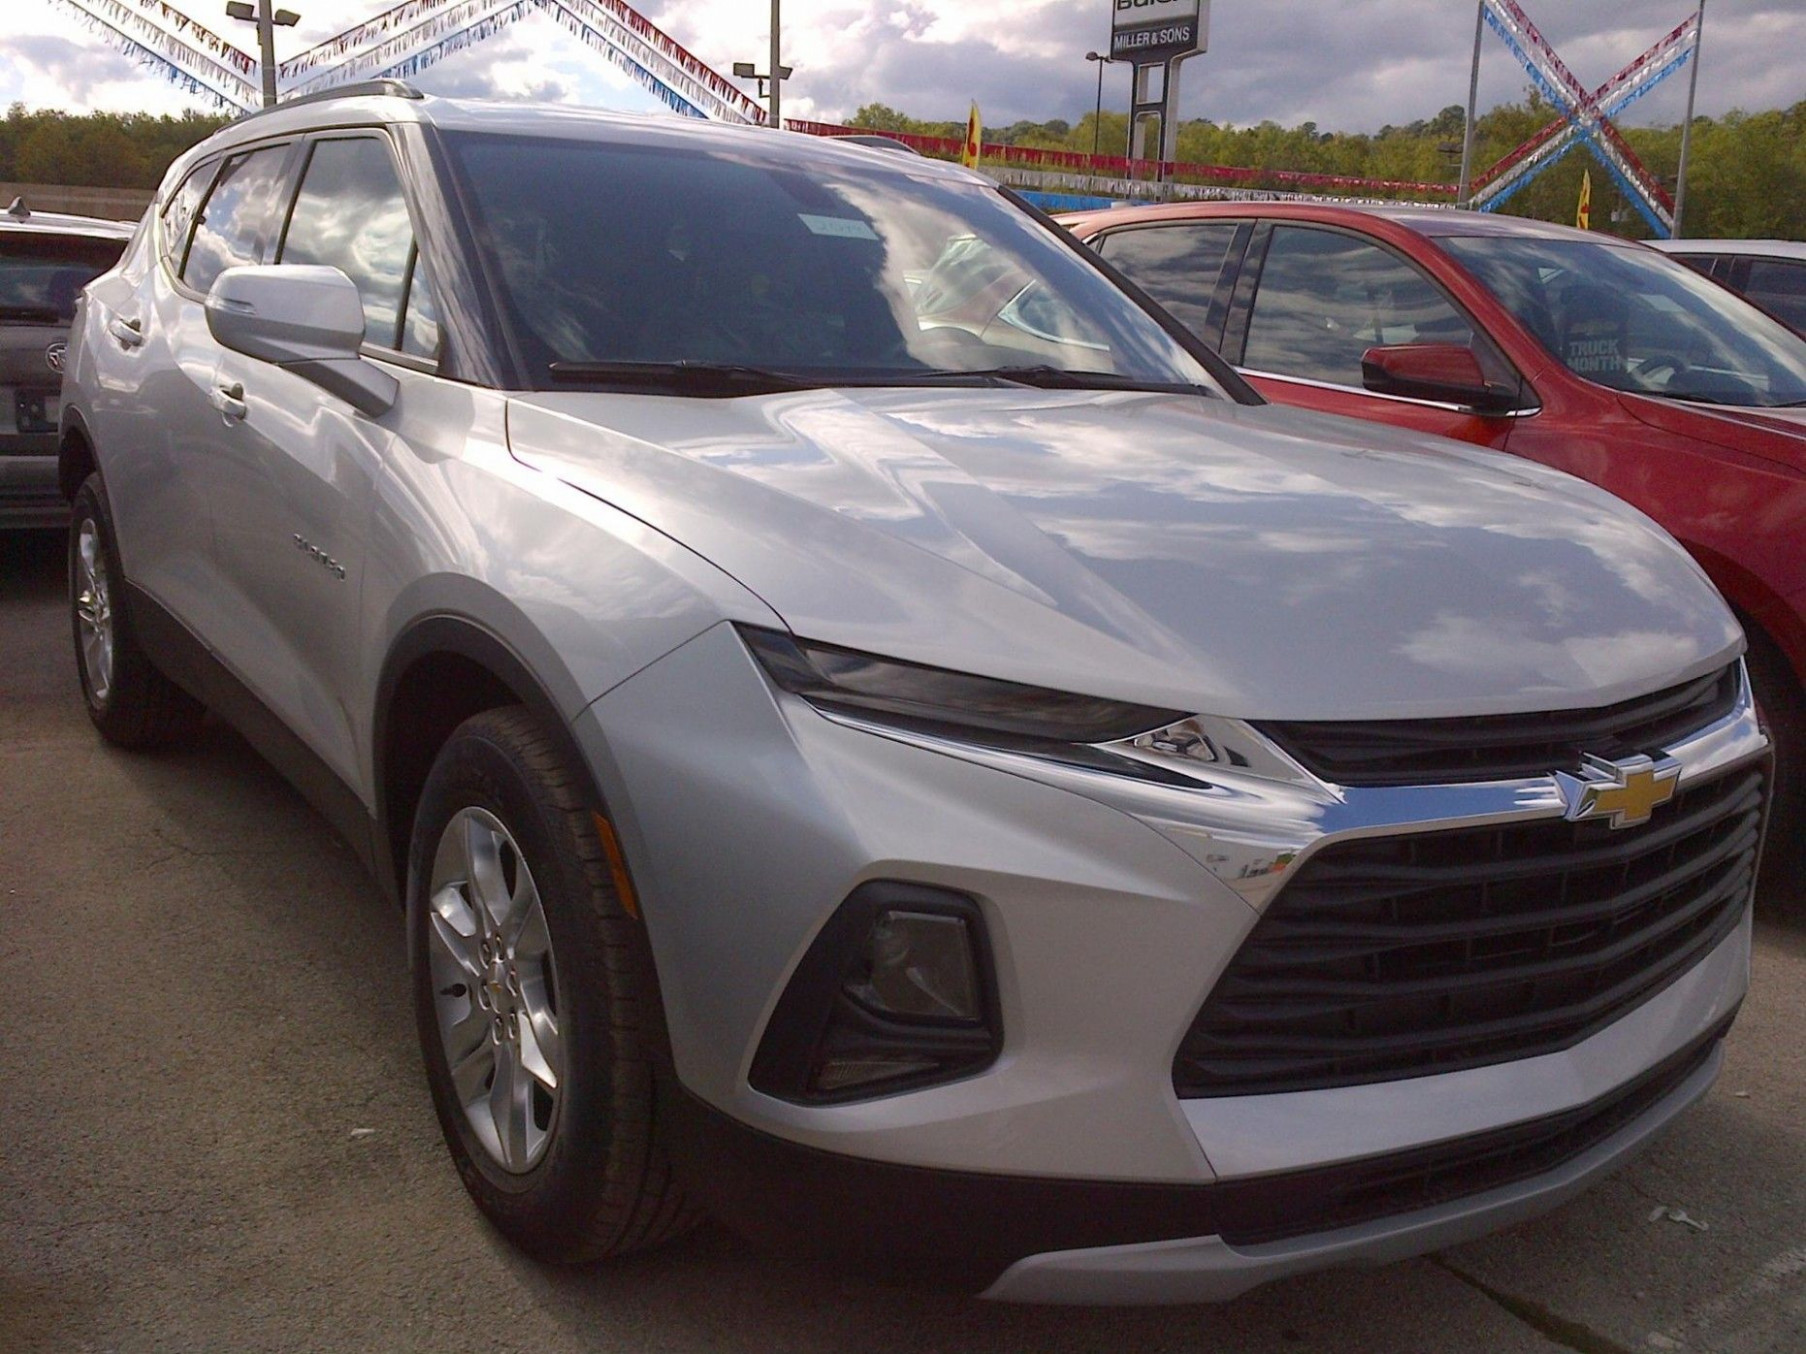 9 Chevrolet Blazer Gas Mileage New Model And Performance - Real ...